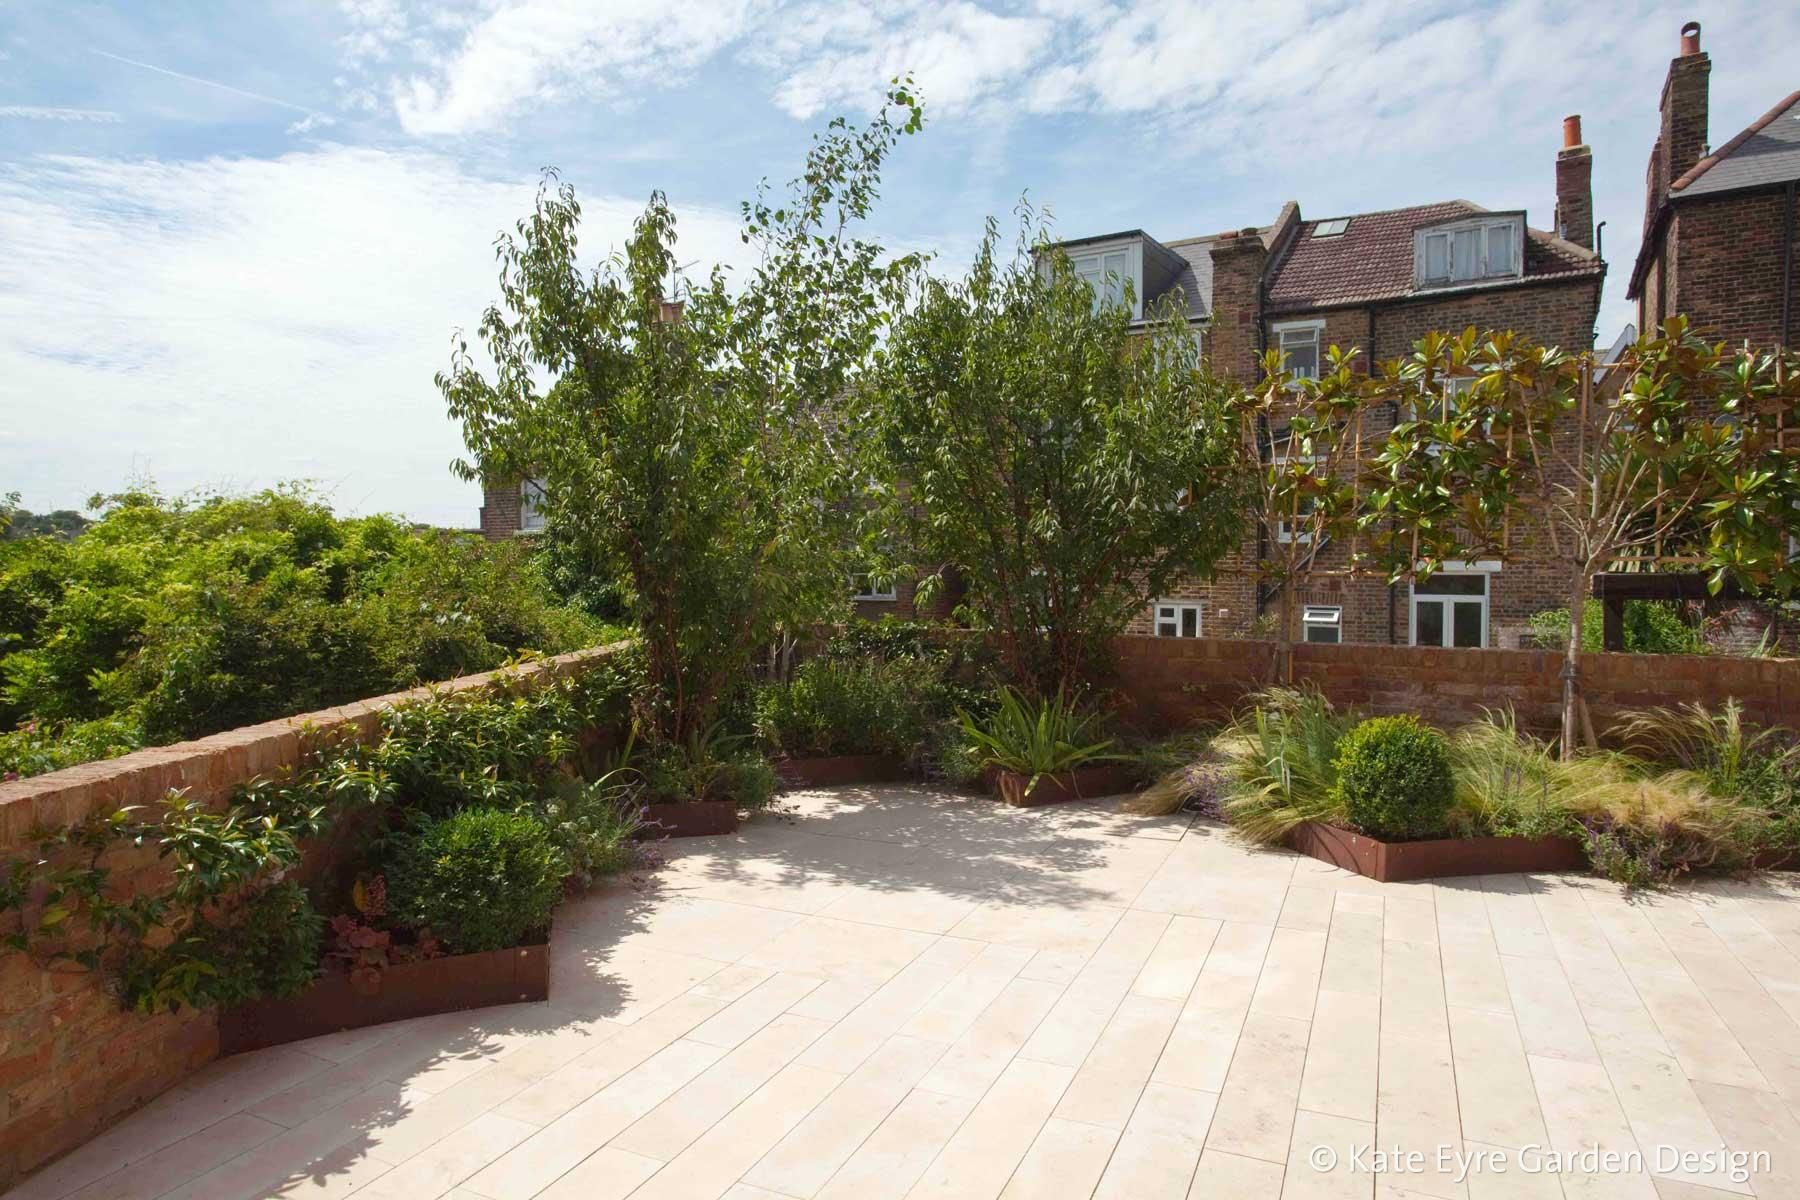 Patio In Garden Design In Crystal Palace London Garden Design Garden Features Patio Garden